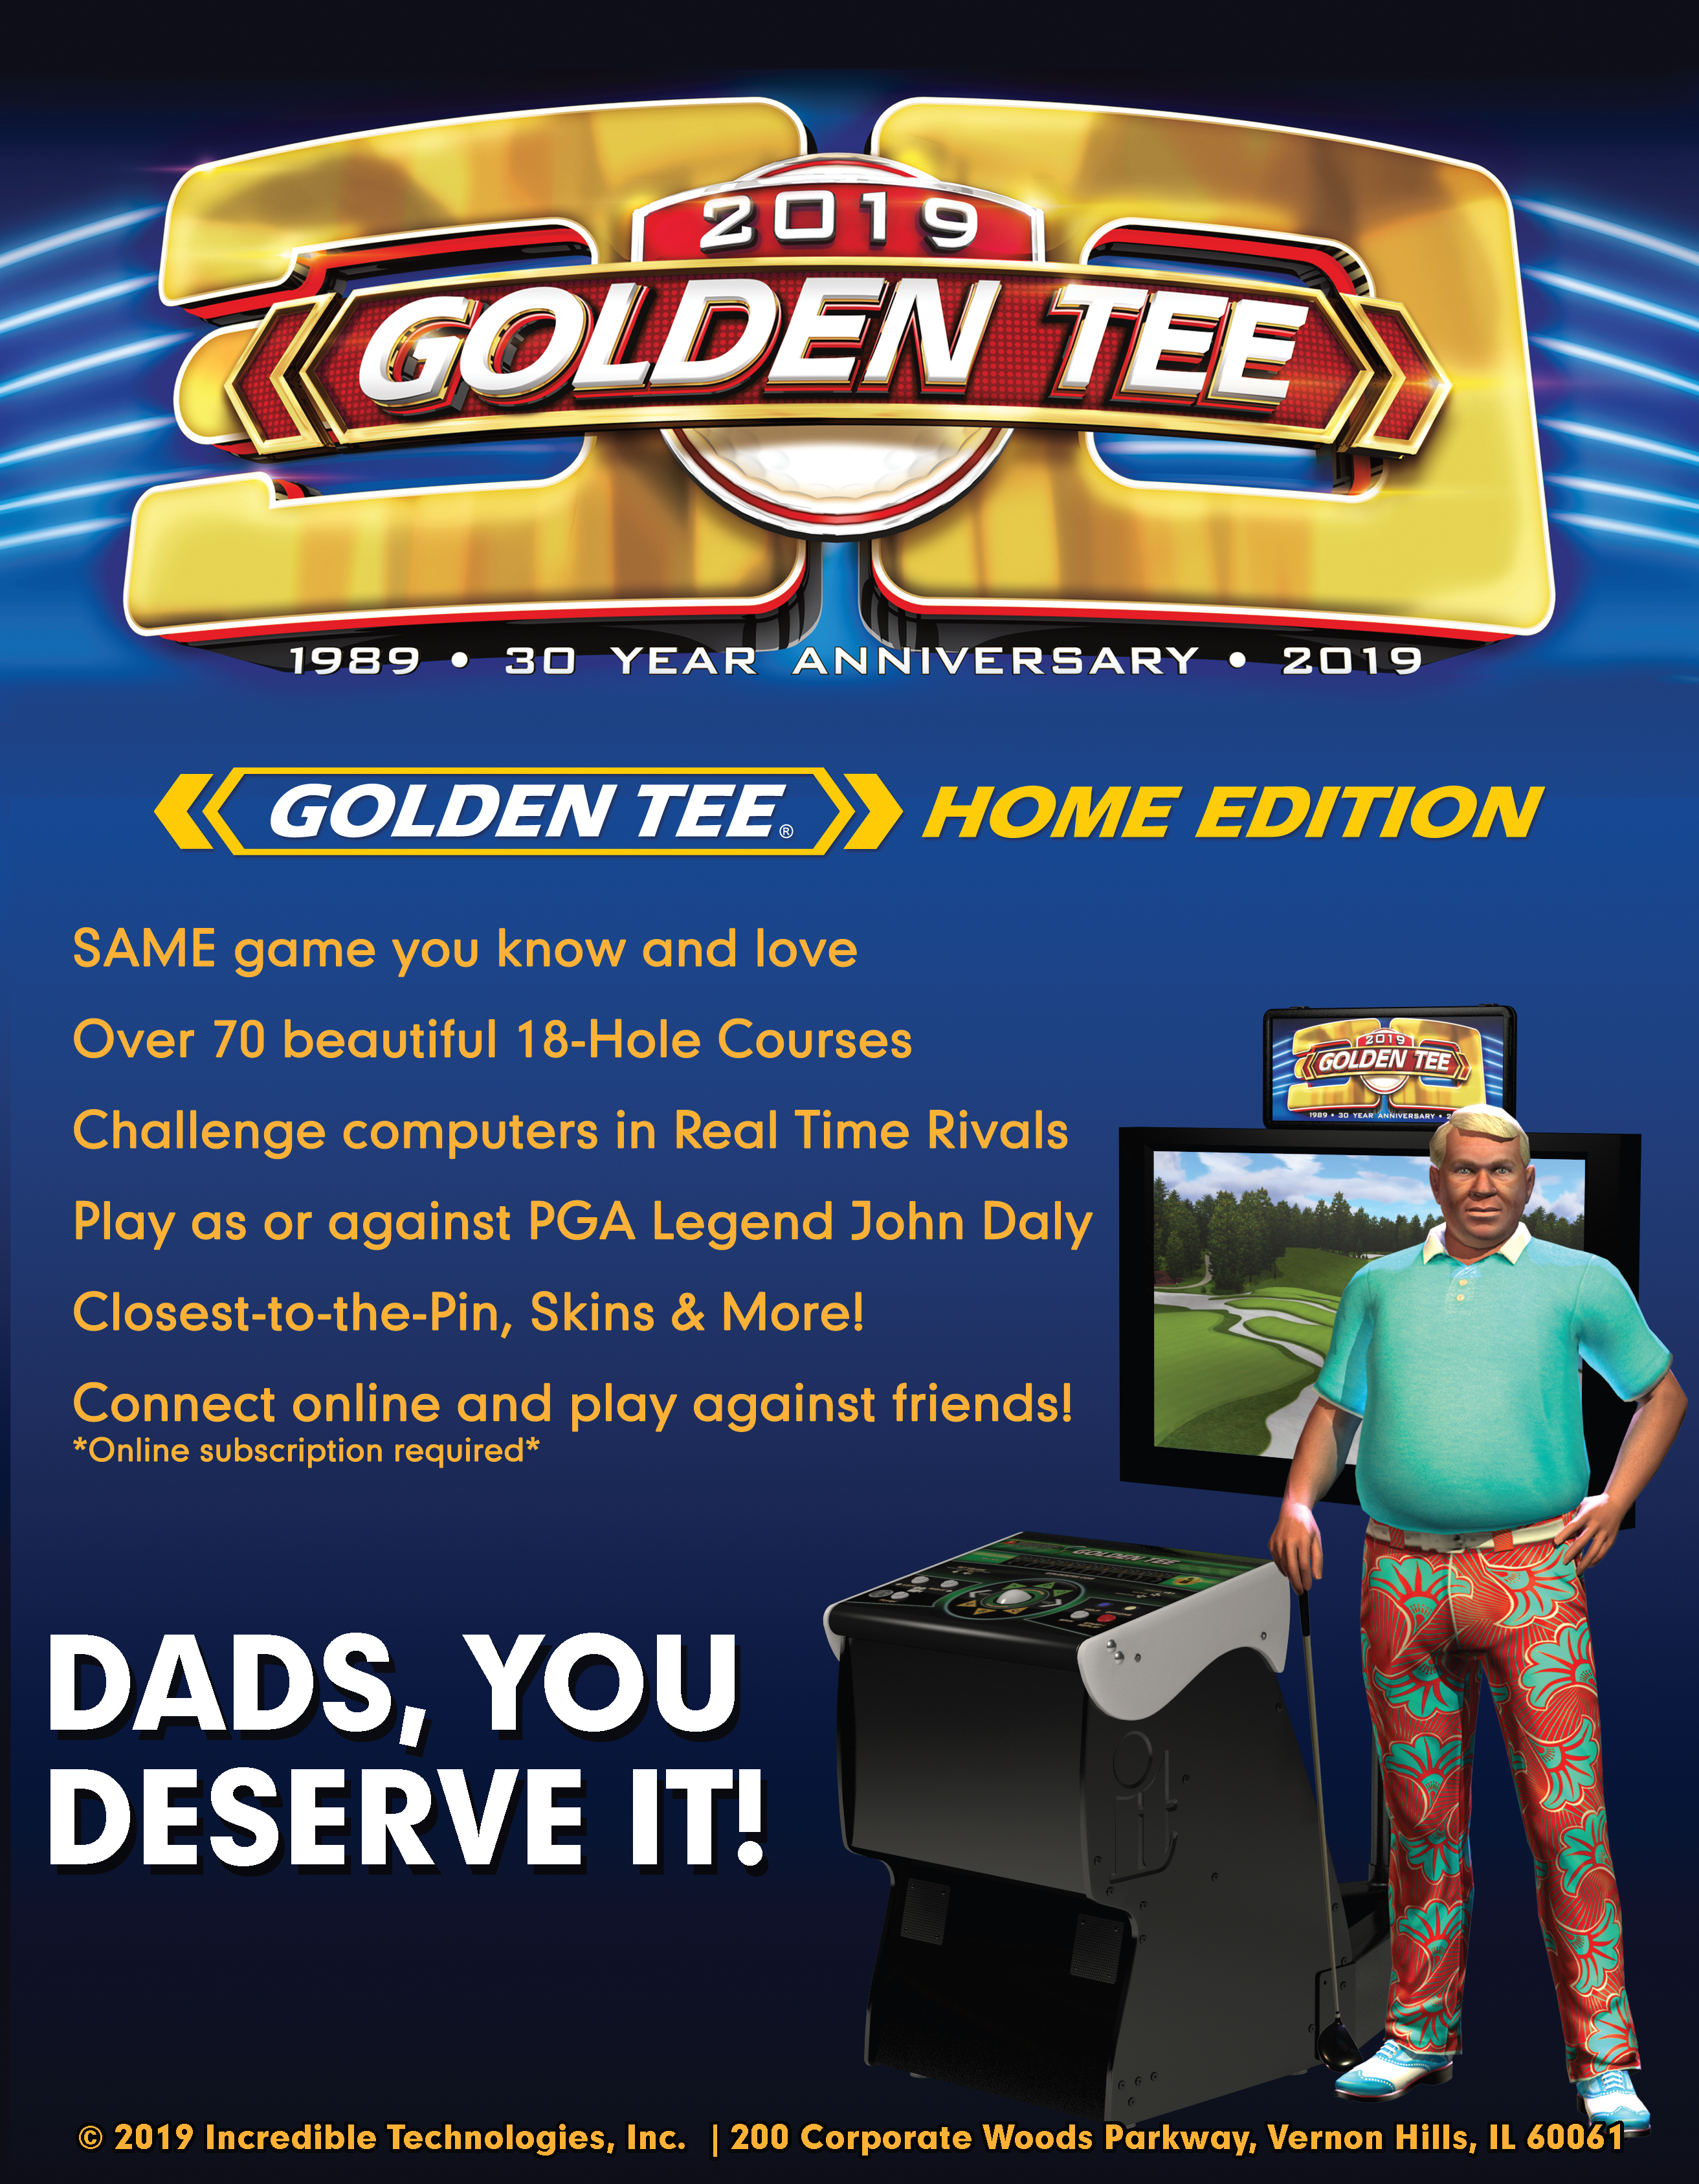 Dads, you deserve it!